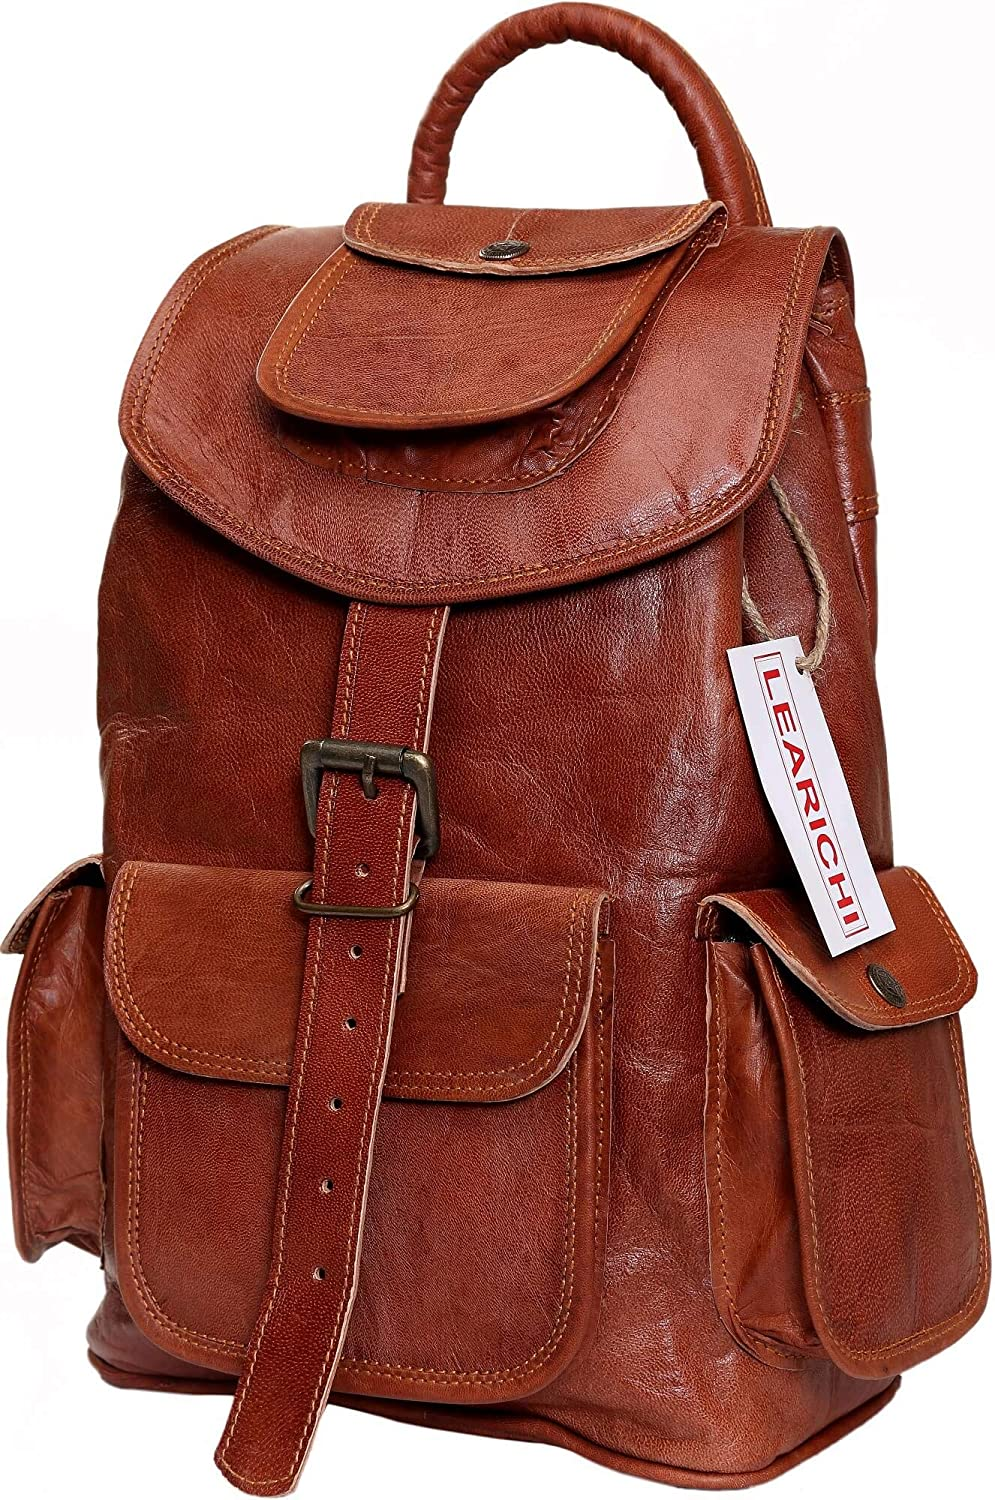 Leather Backpack for Men and Women Handmade Drawstring Rucksack Daypack Bag for Boys & Girls Medium Size 14 inches